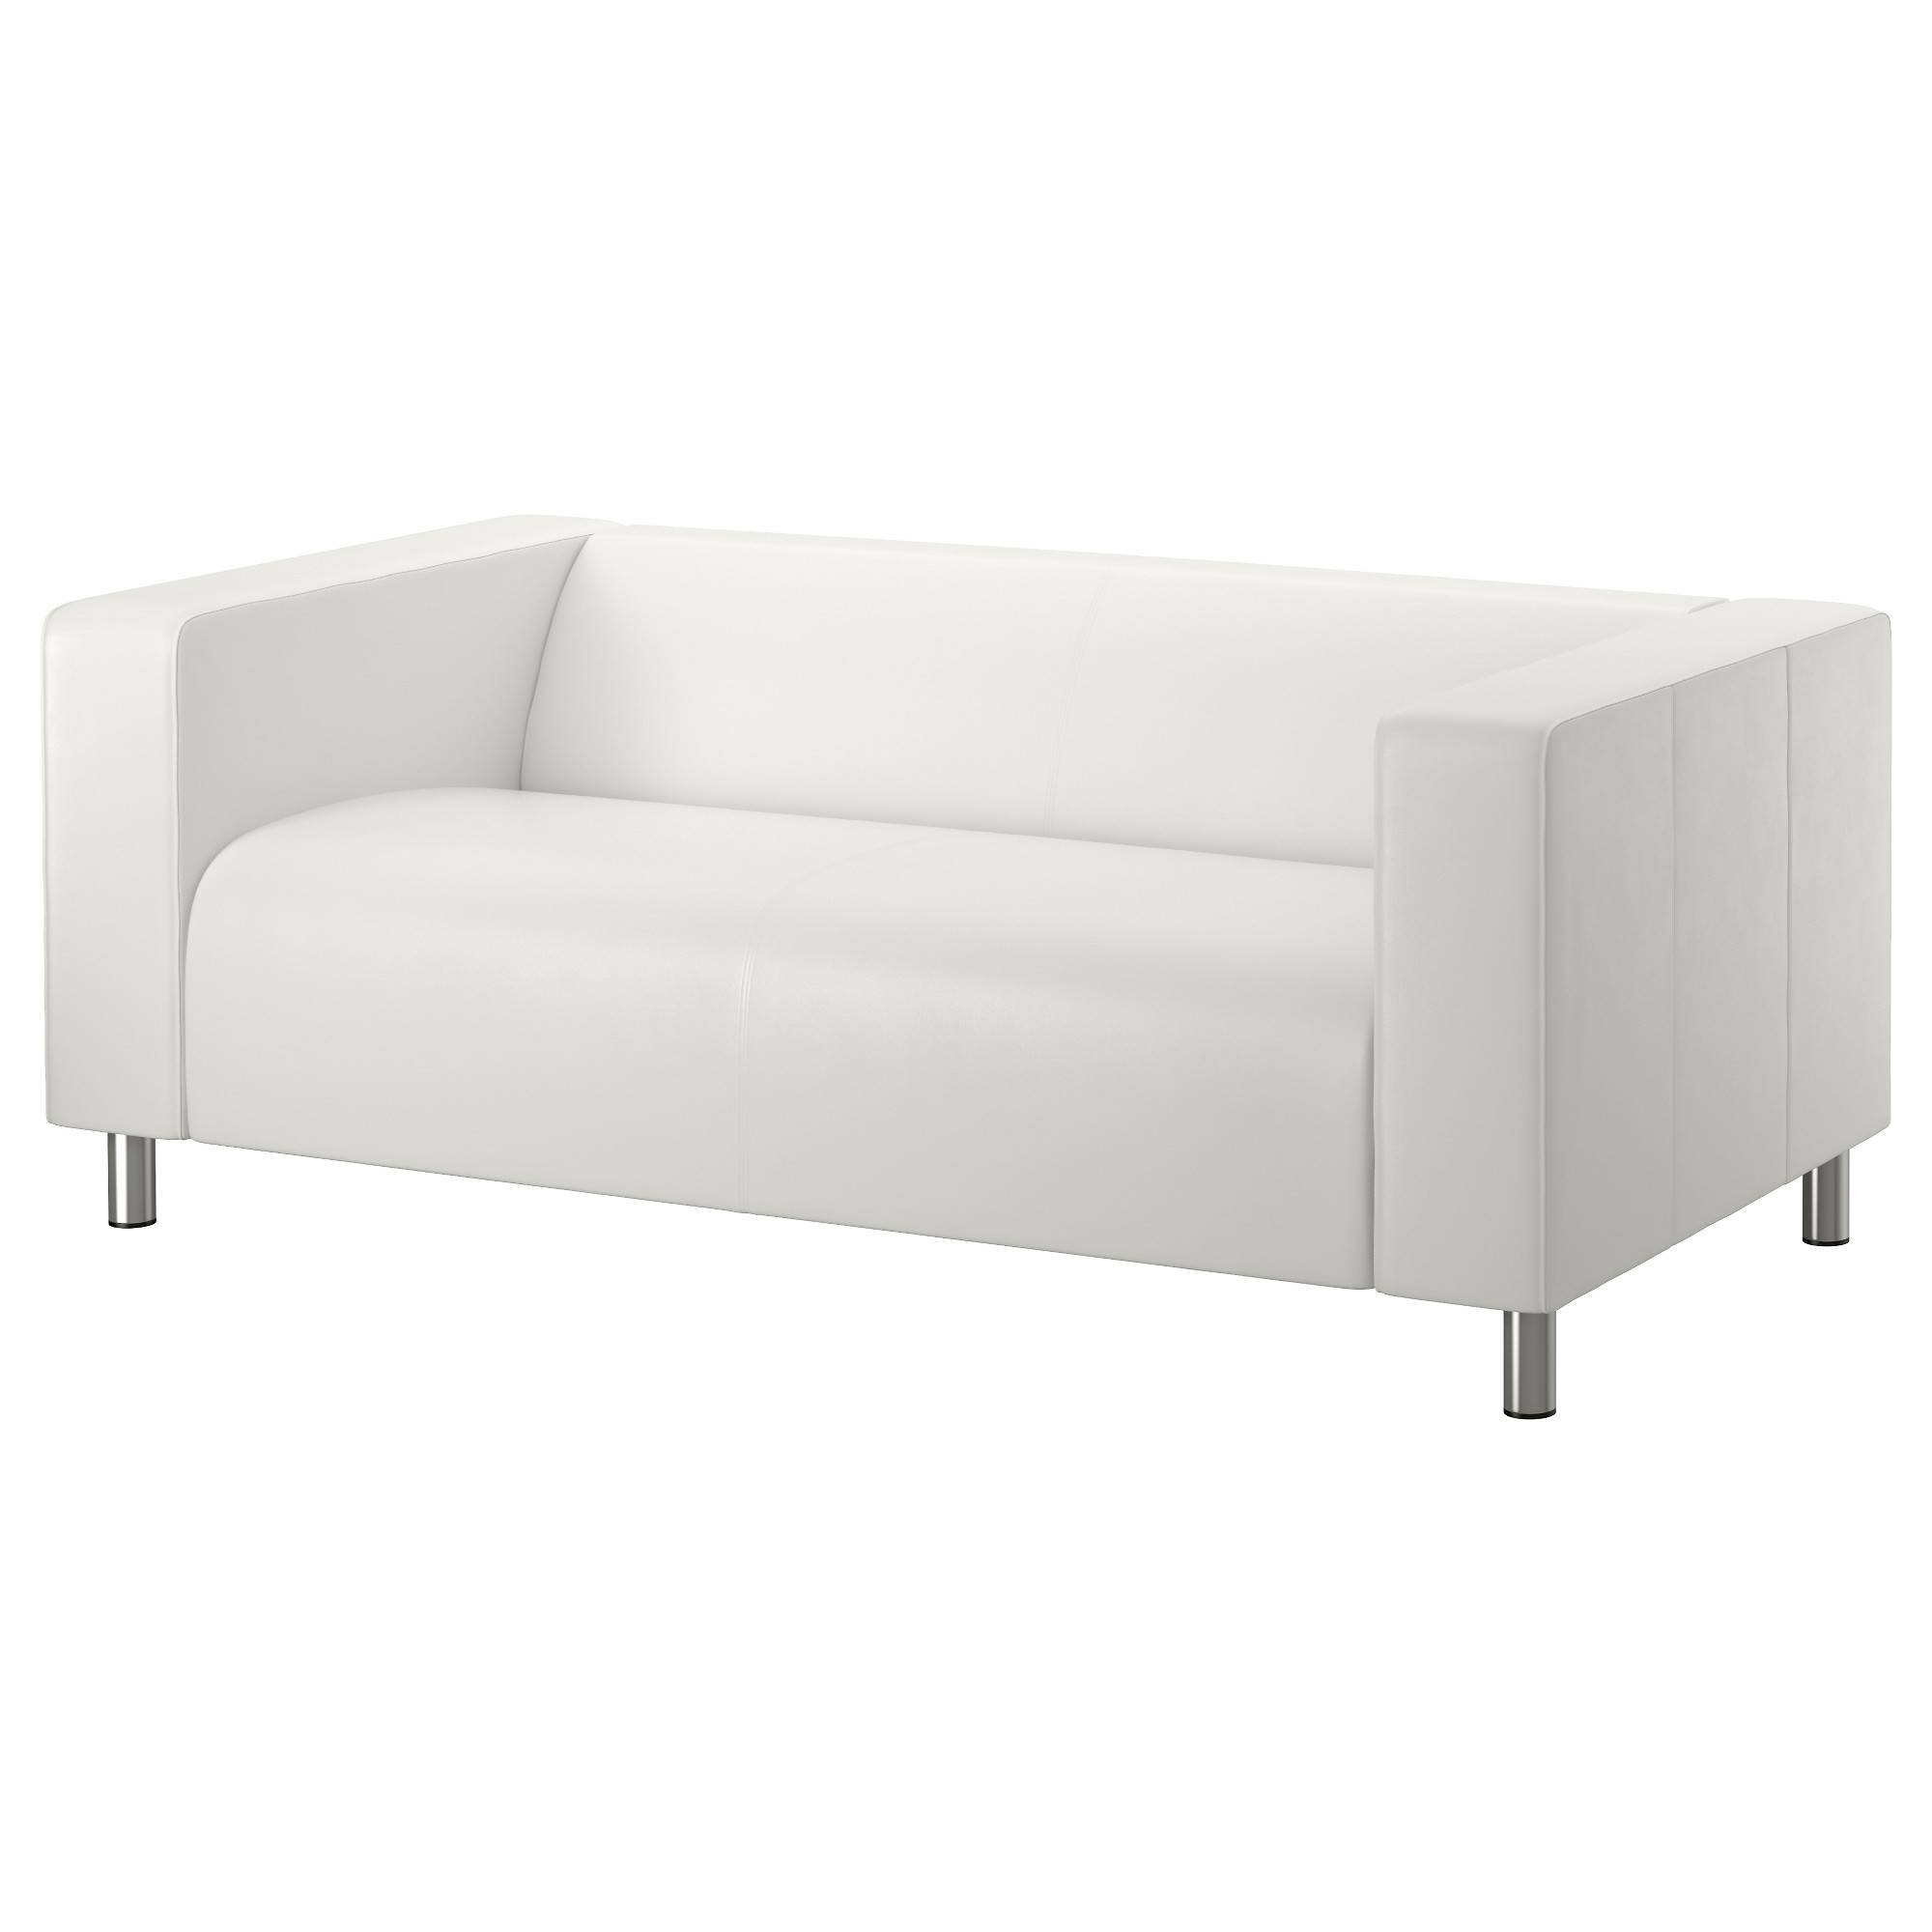 Small Sofa & 2 Seater Sofa | Ikea throughout Ikea Two Seater Sofas (Image 21 of 30)